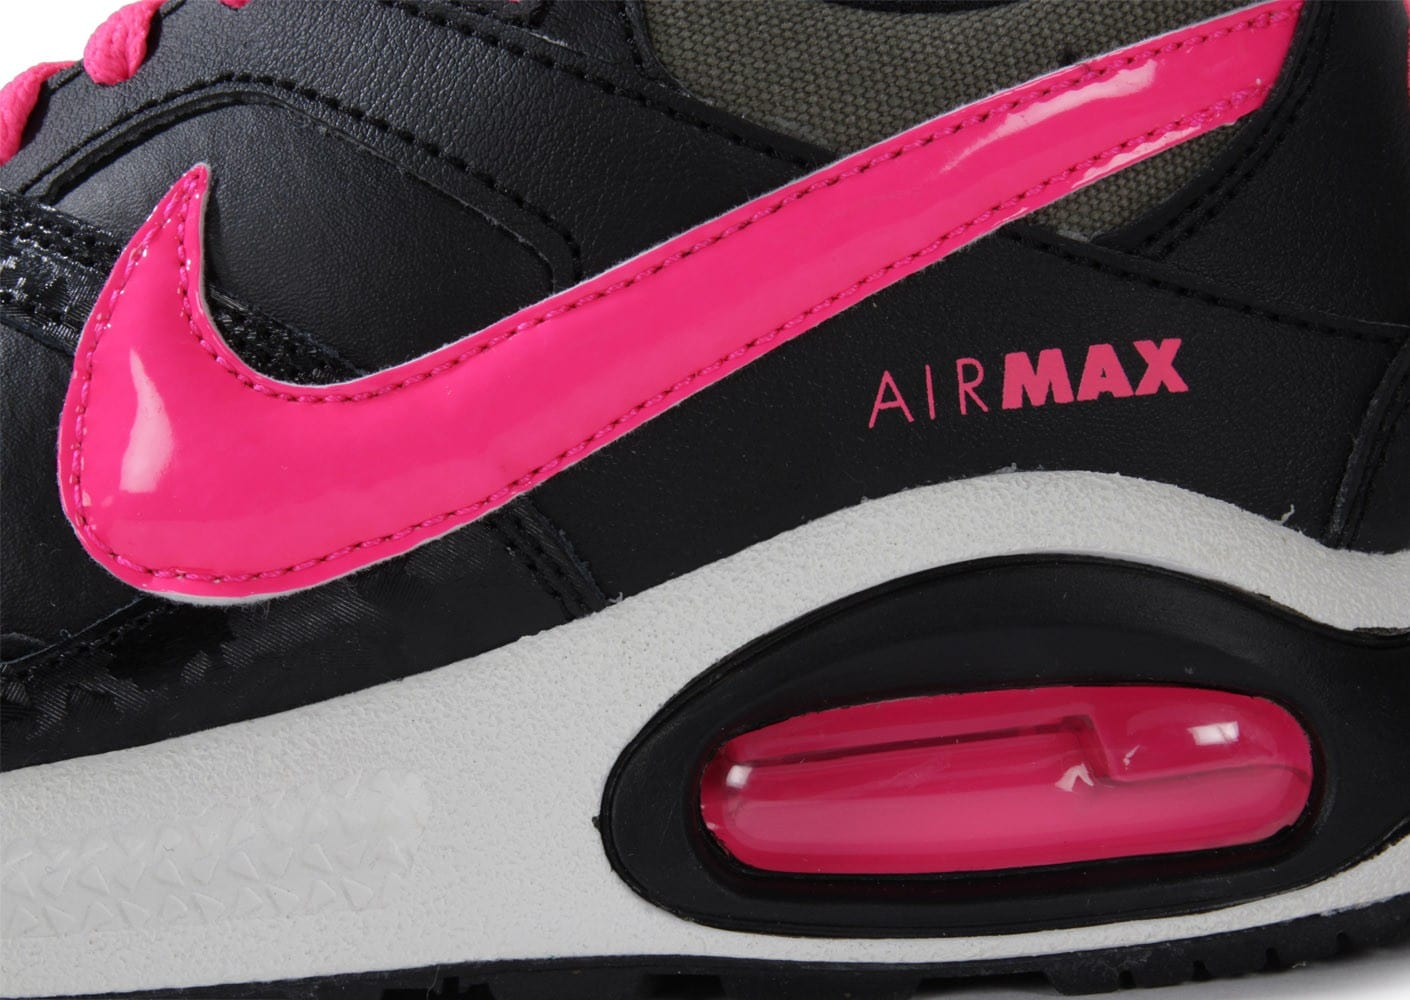 newest f71a5 ade42 Chaussures Chaussures Max Nike Command Rose Junior Air Noire Et 8BTxZB